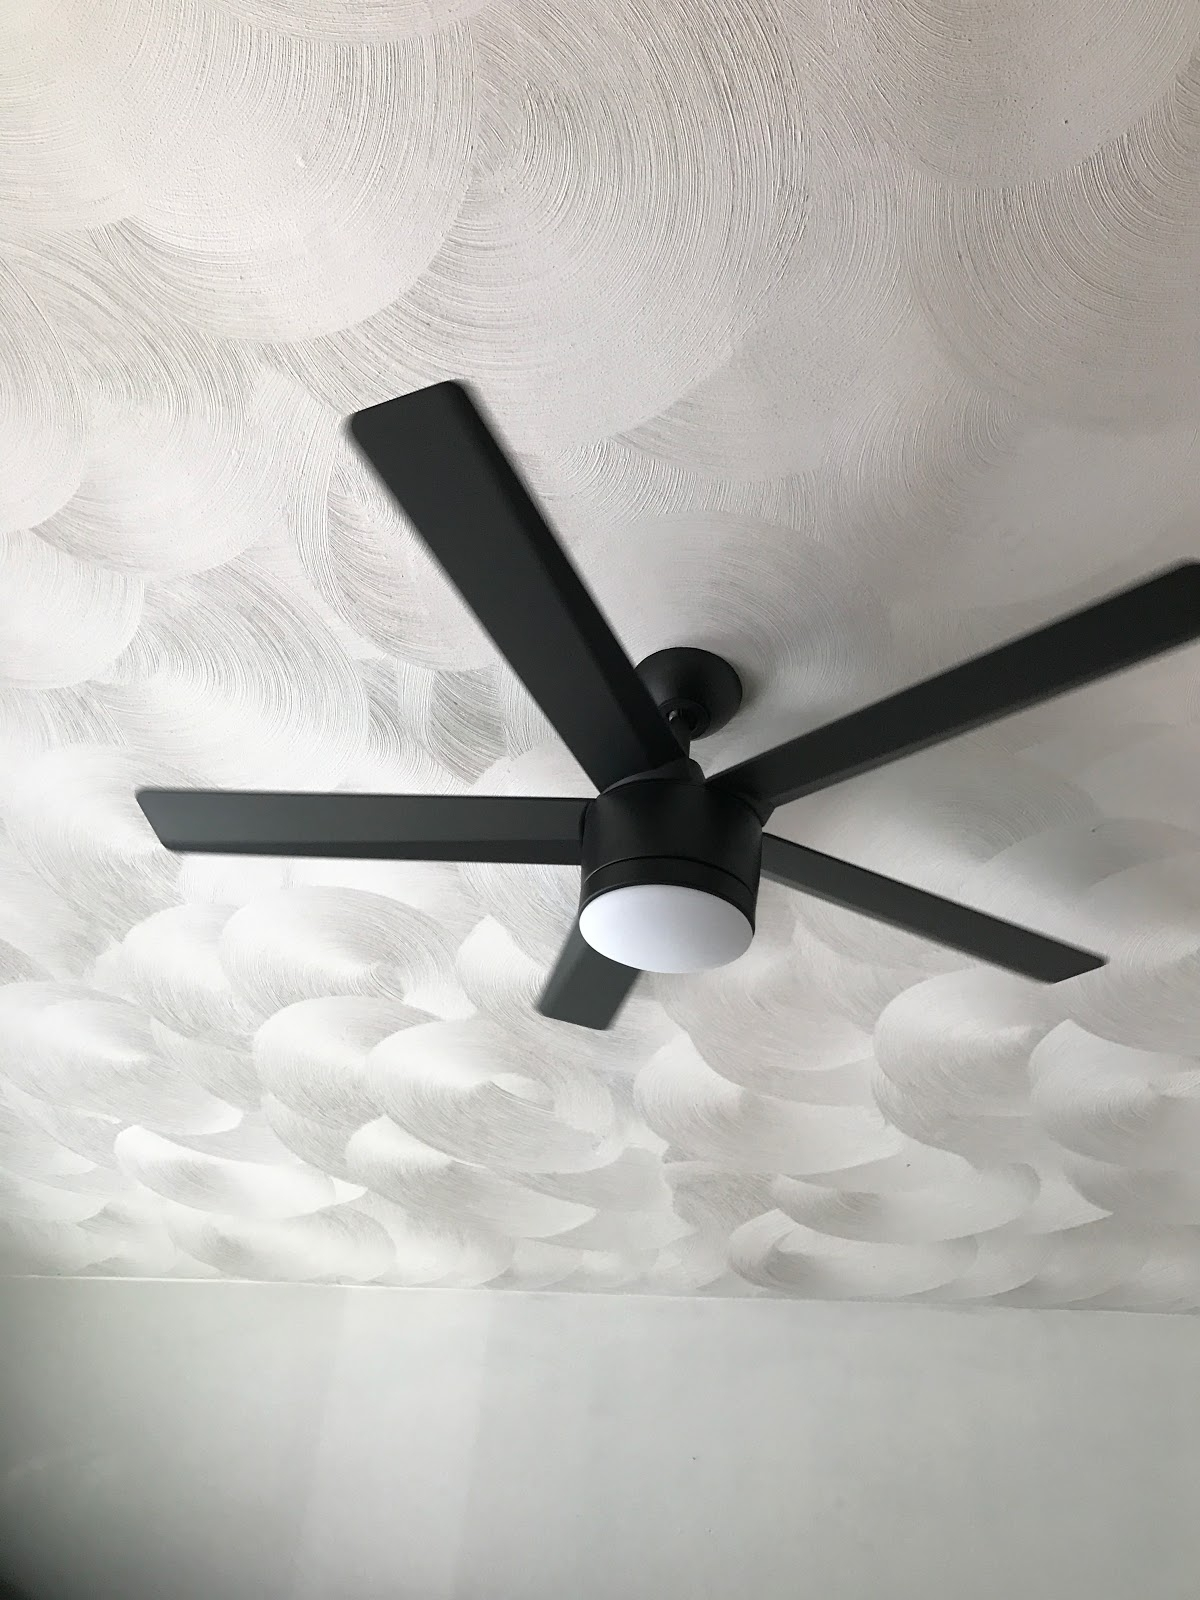 10 Sleek And Stylish Lighted Ceiling Fans Under $200 (And Our New In Preferred Outdoor Ceiling Fans Under $200 (Gallery 13 of 20)